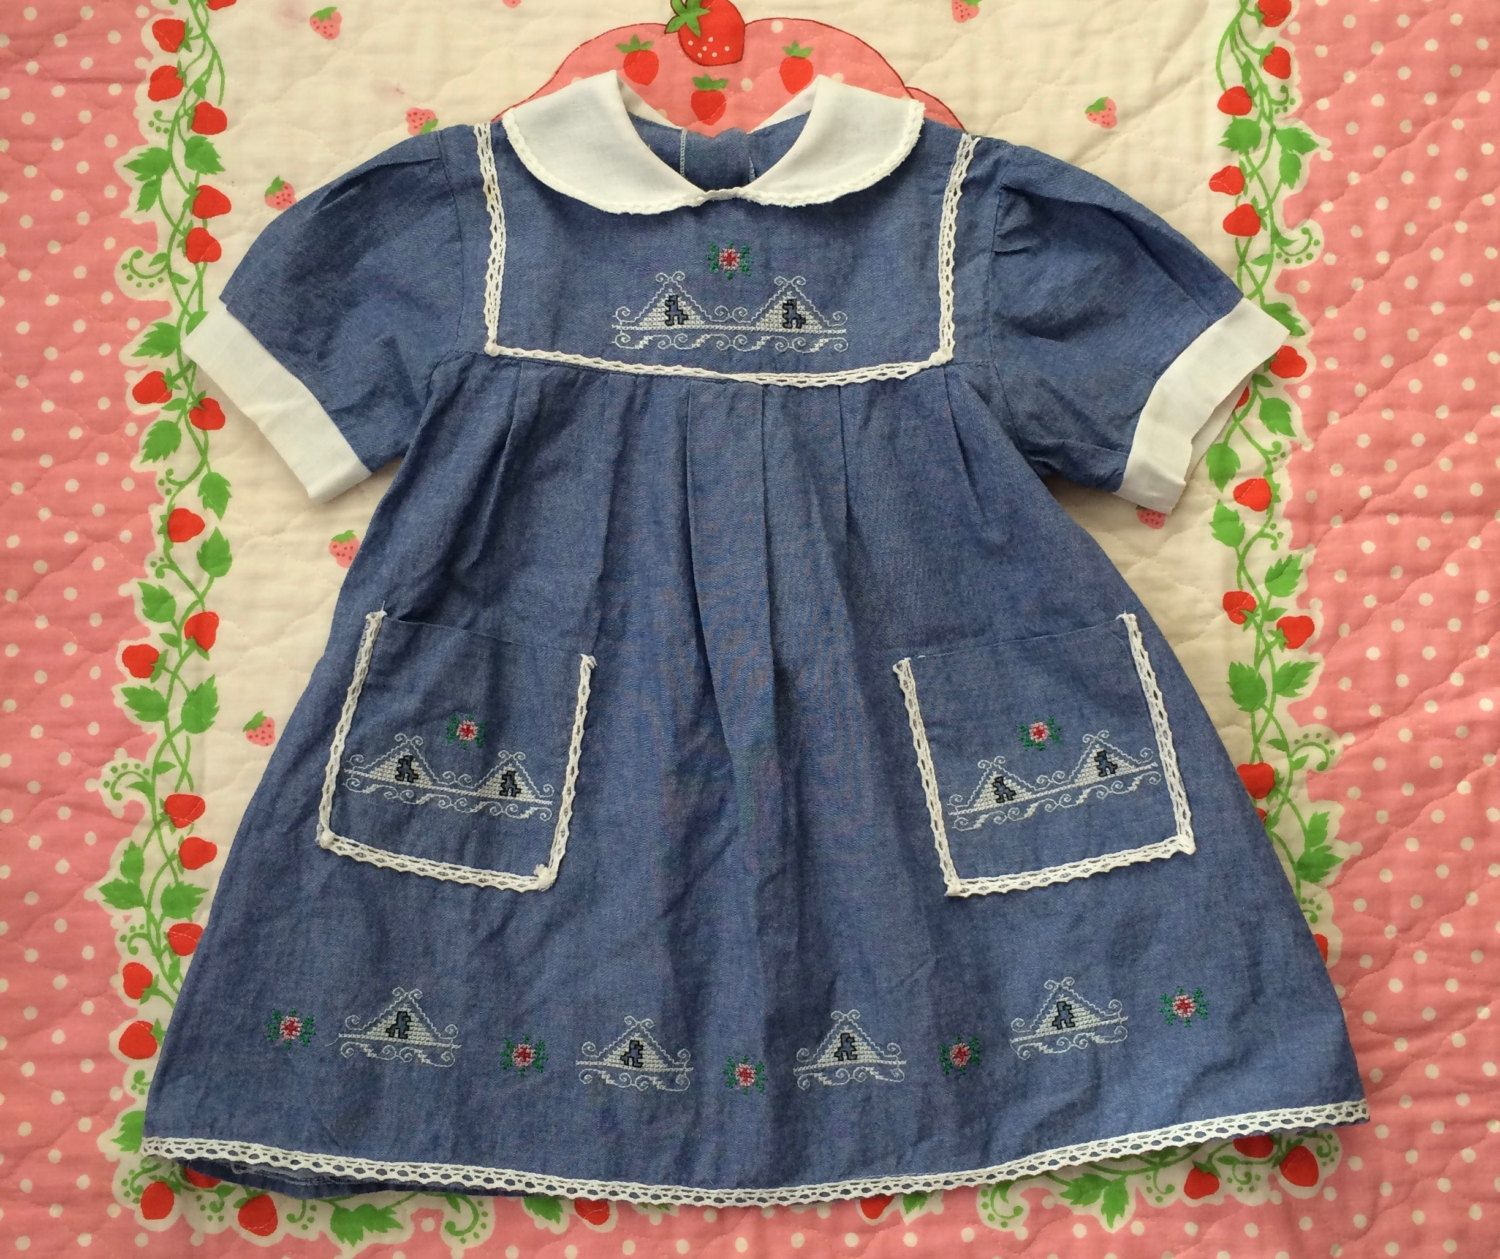 Embroidered Dress 4t By Lishyloo On Etsy